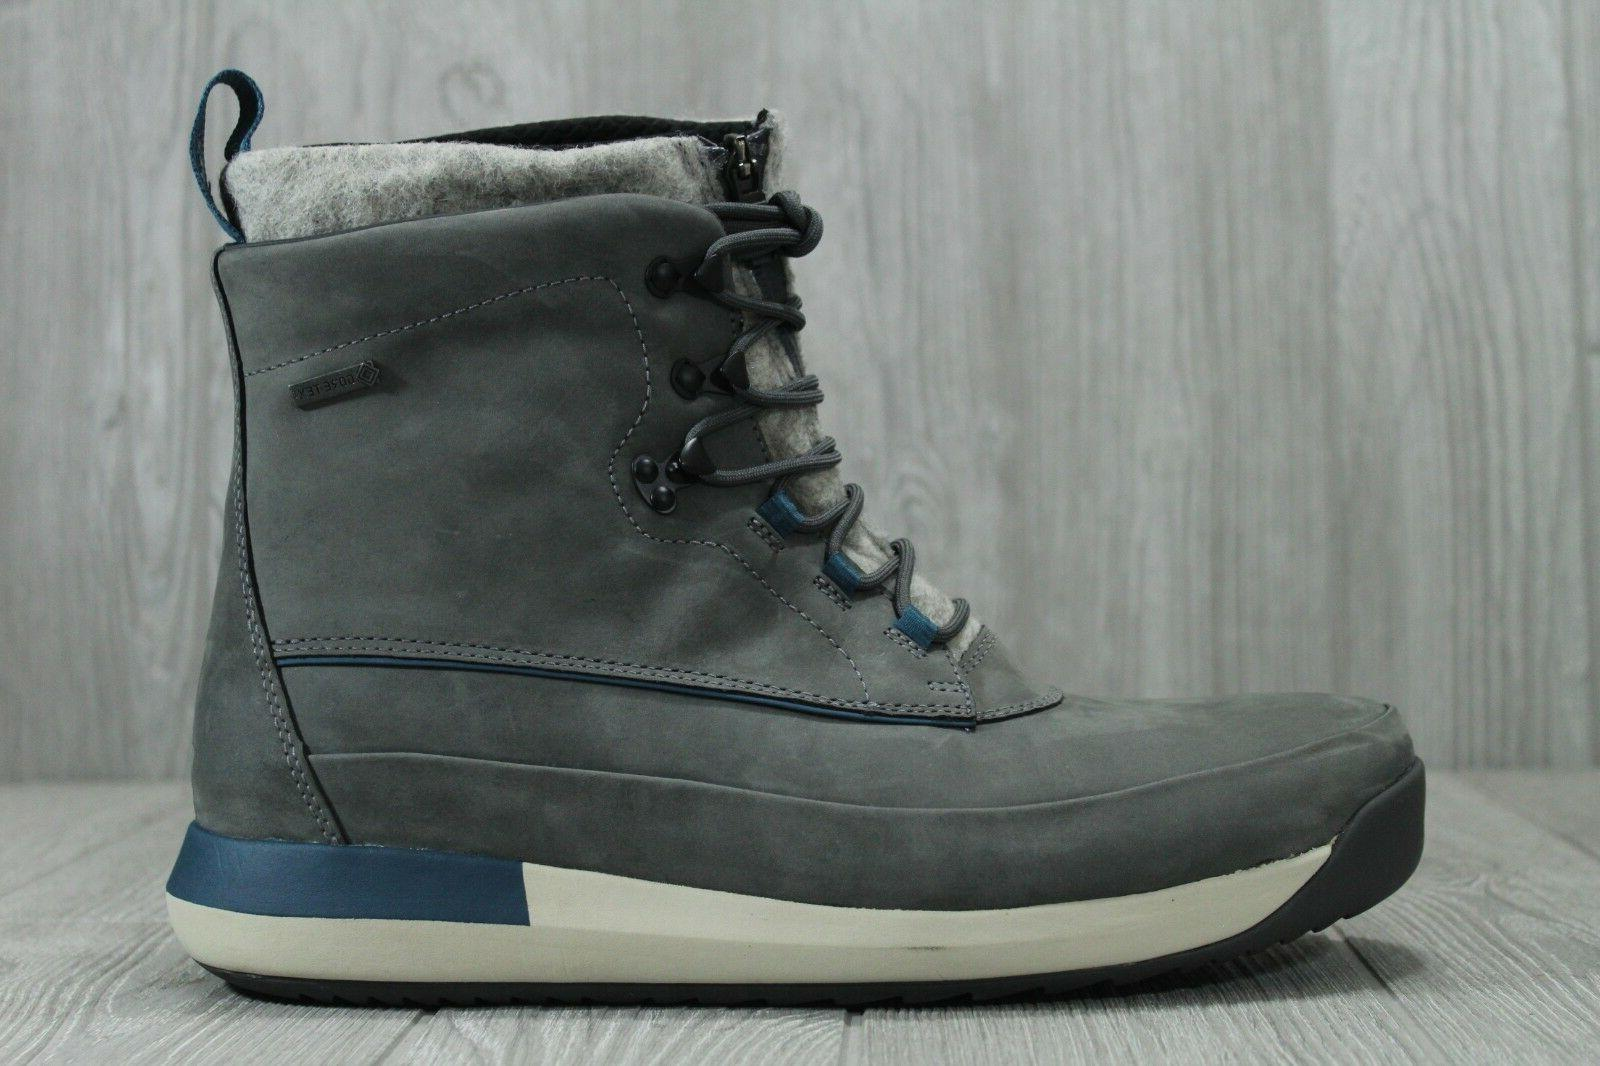 34 johto rise gtx leather winter boots